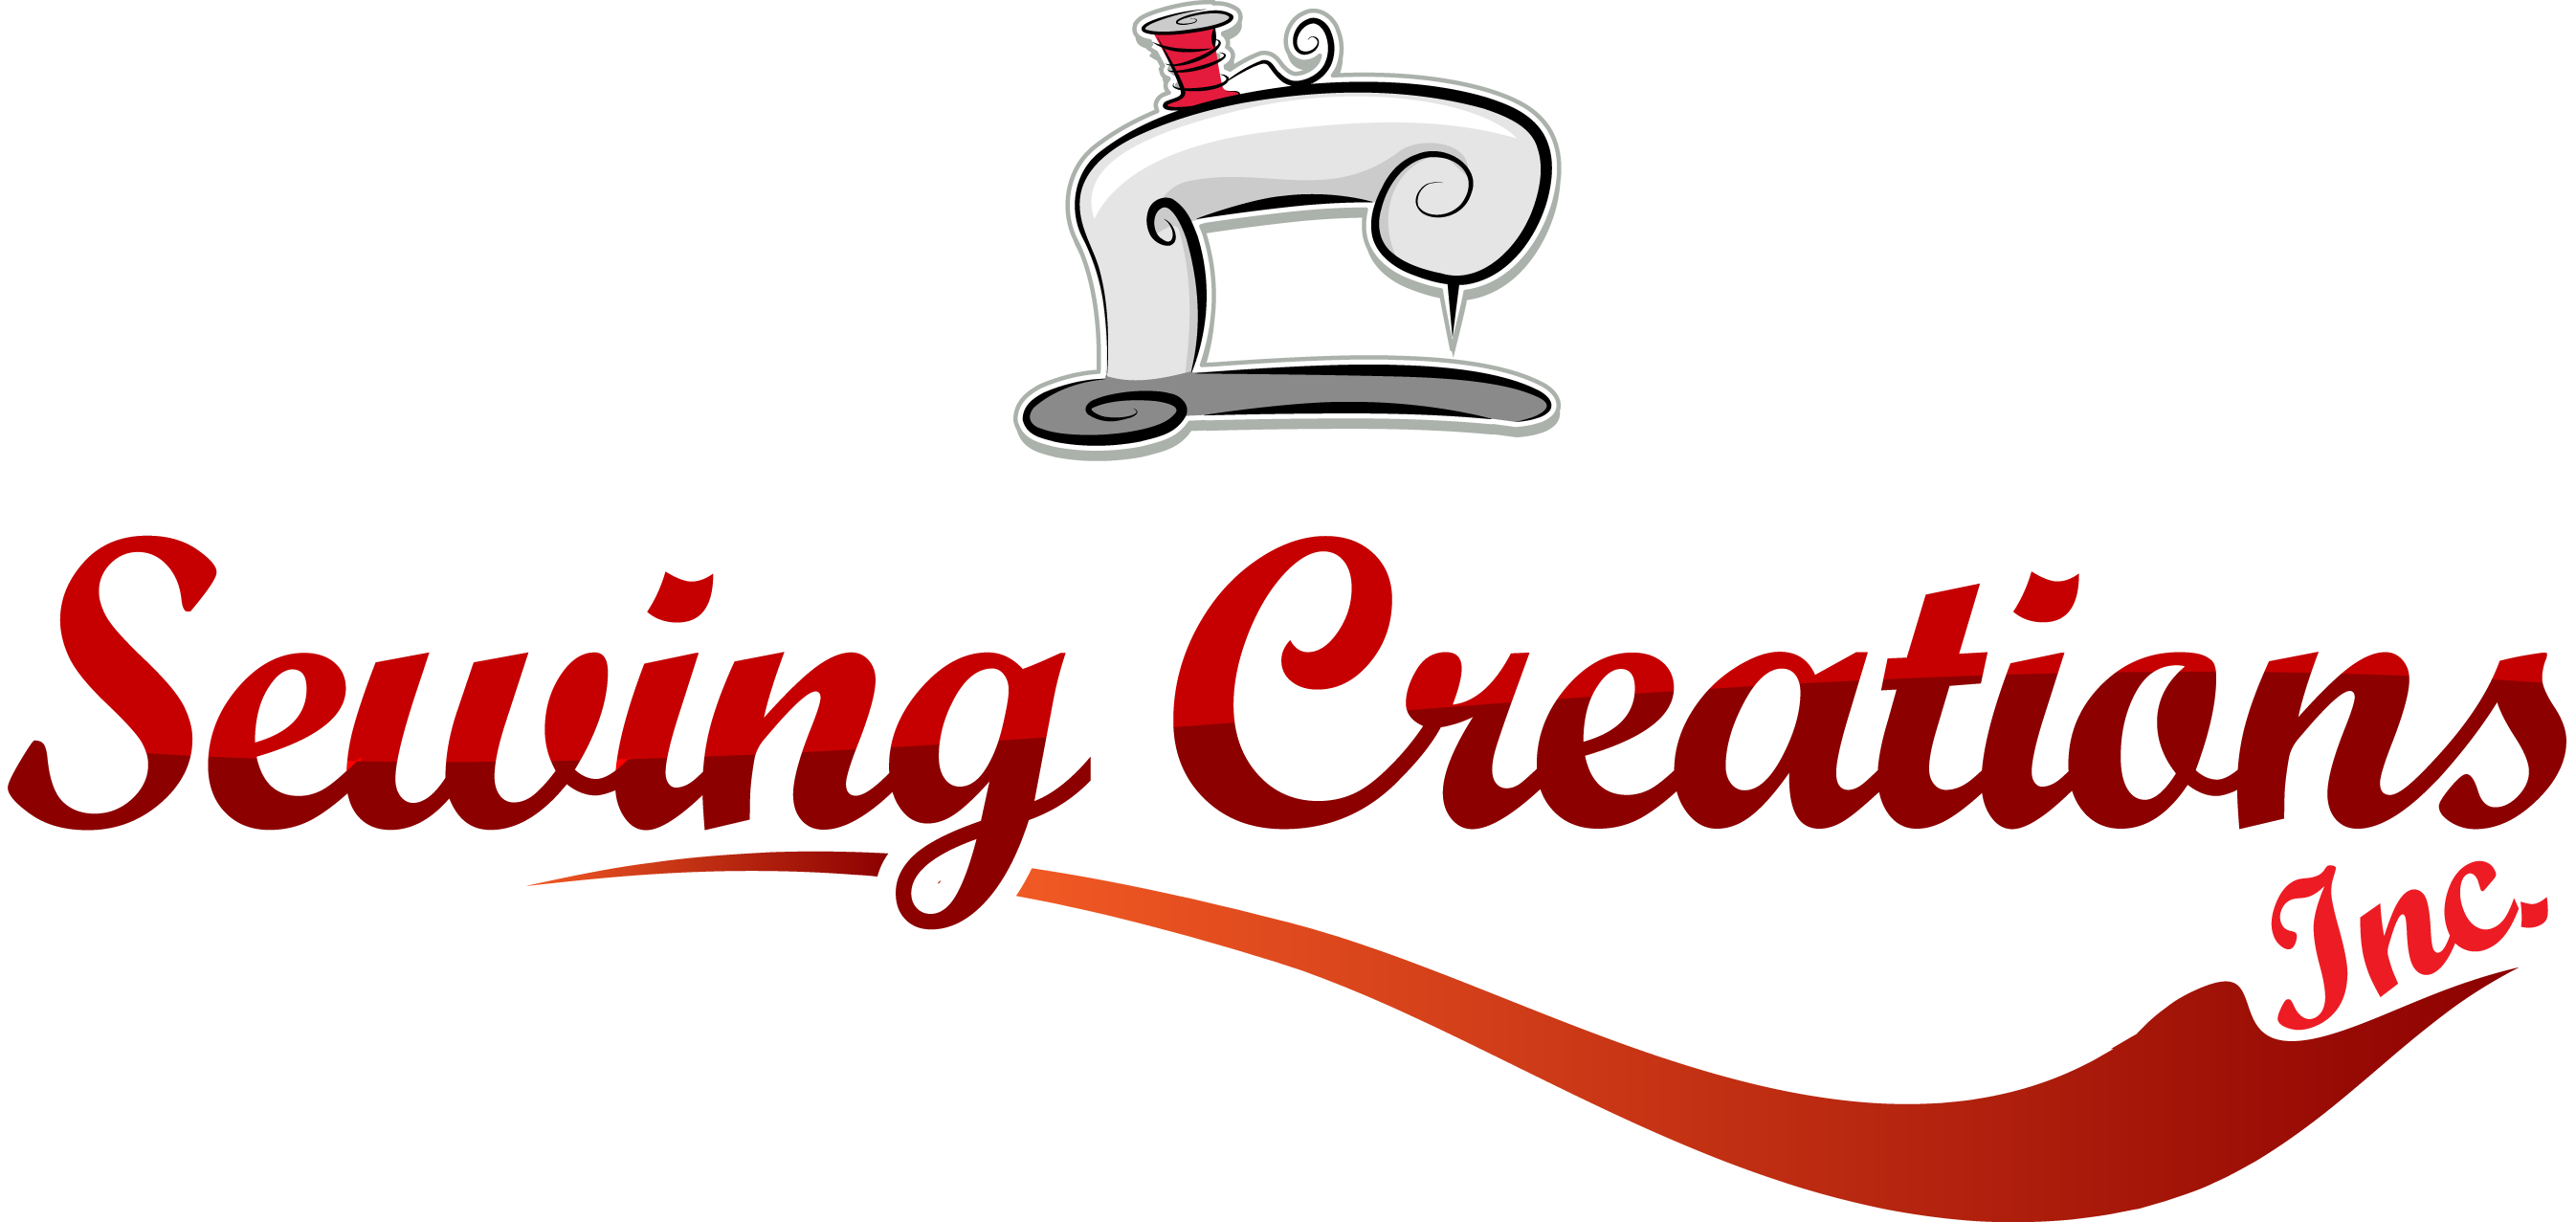 Sewing clipart sewing clothes. Machines site logo